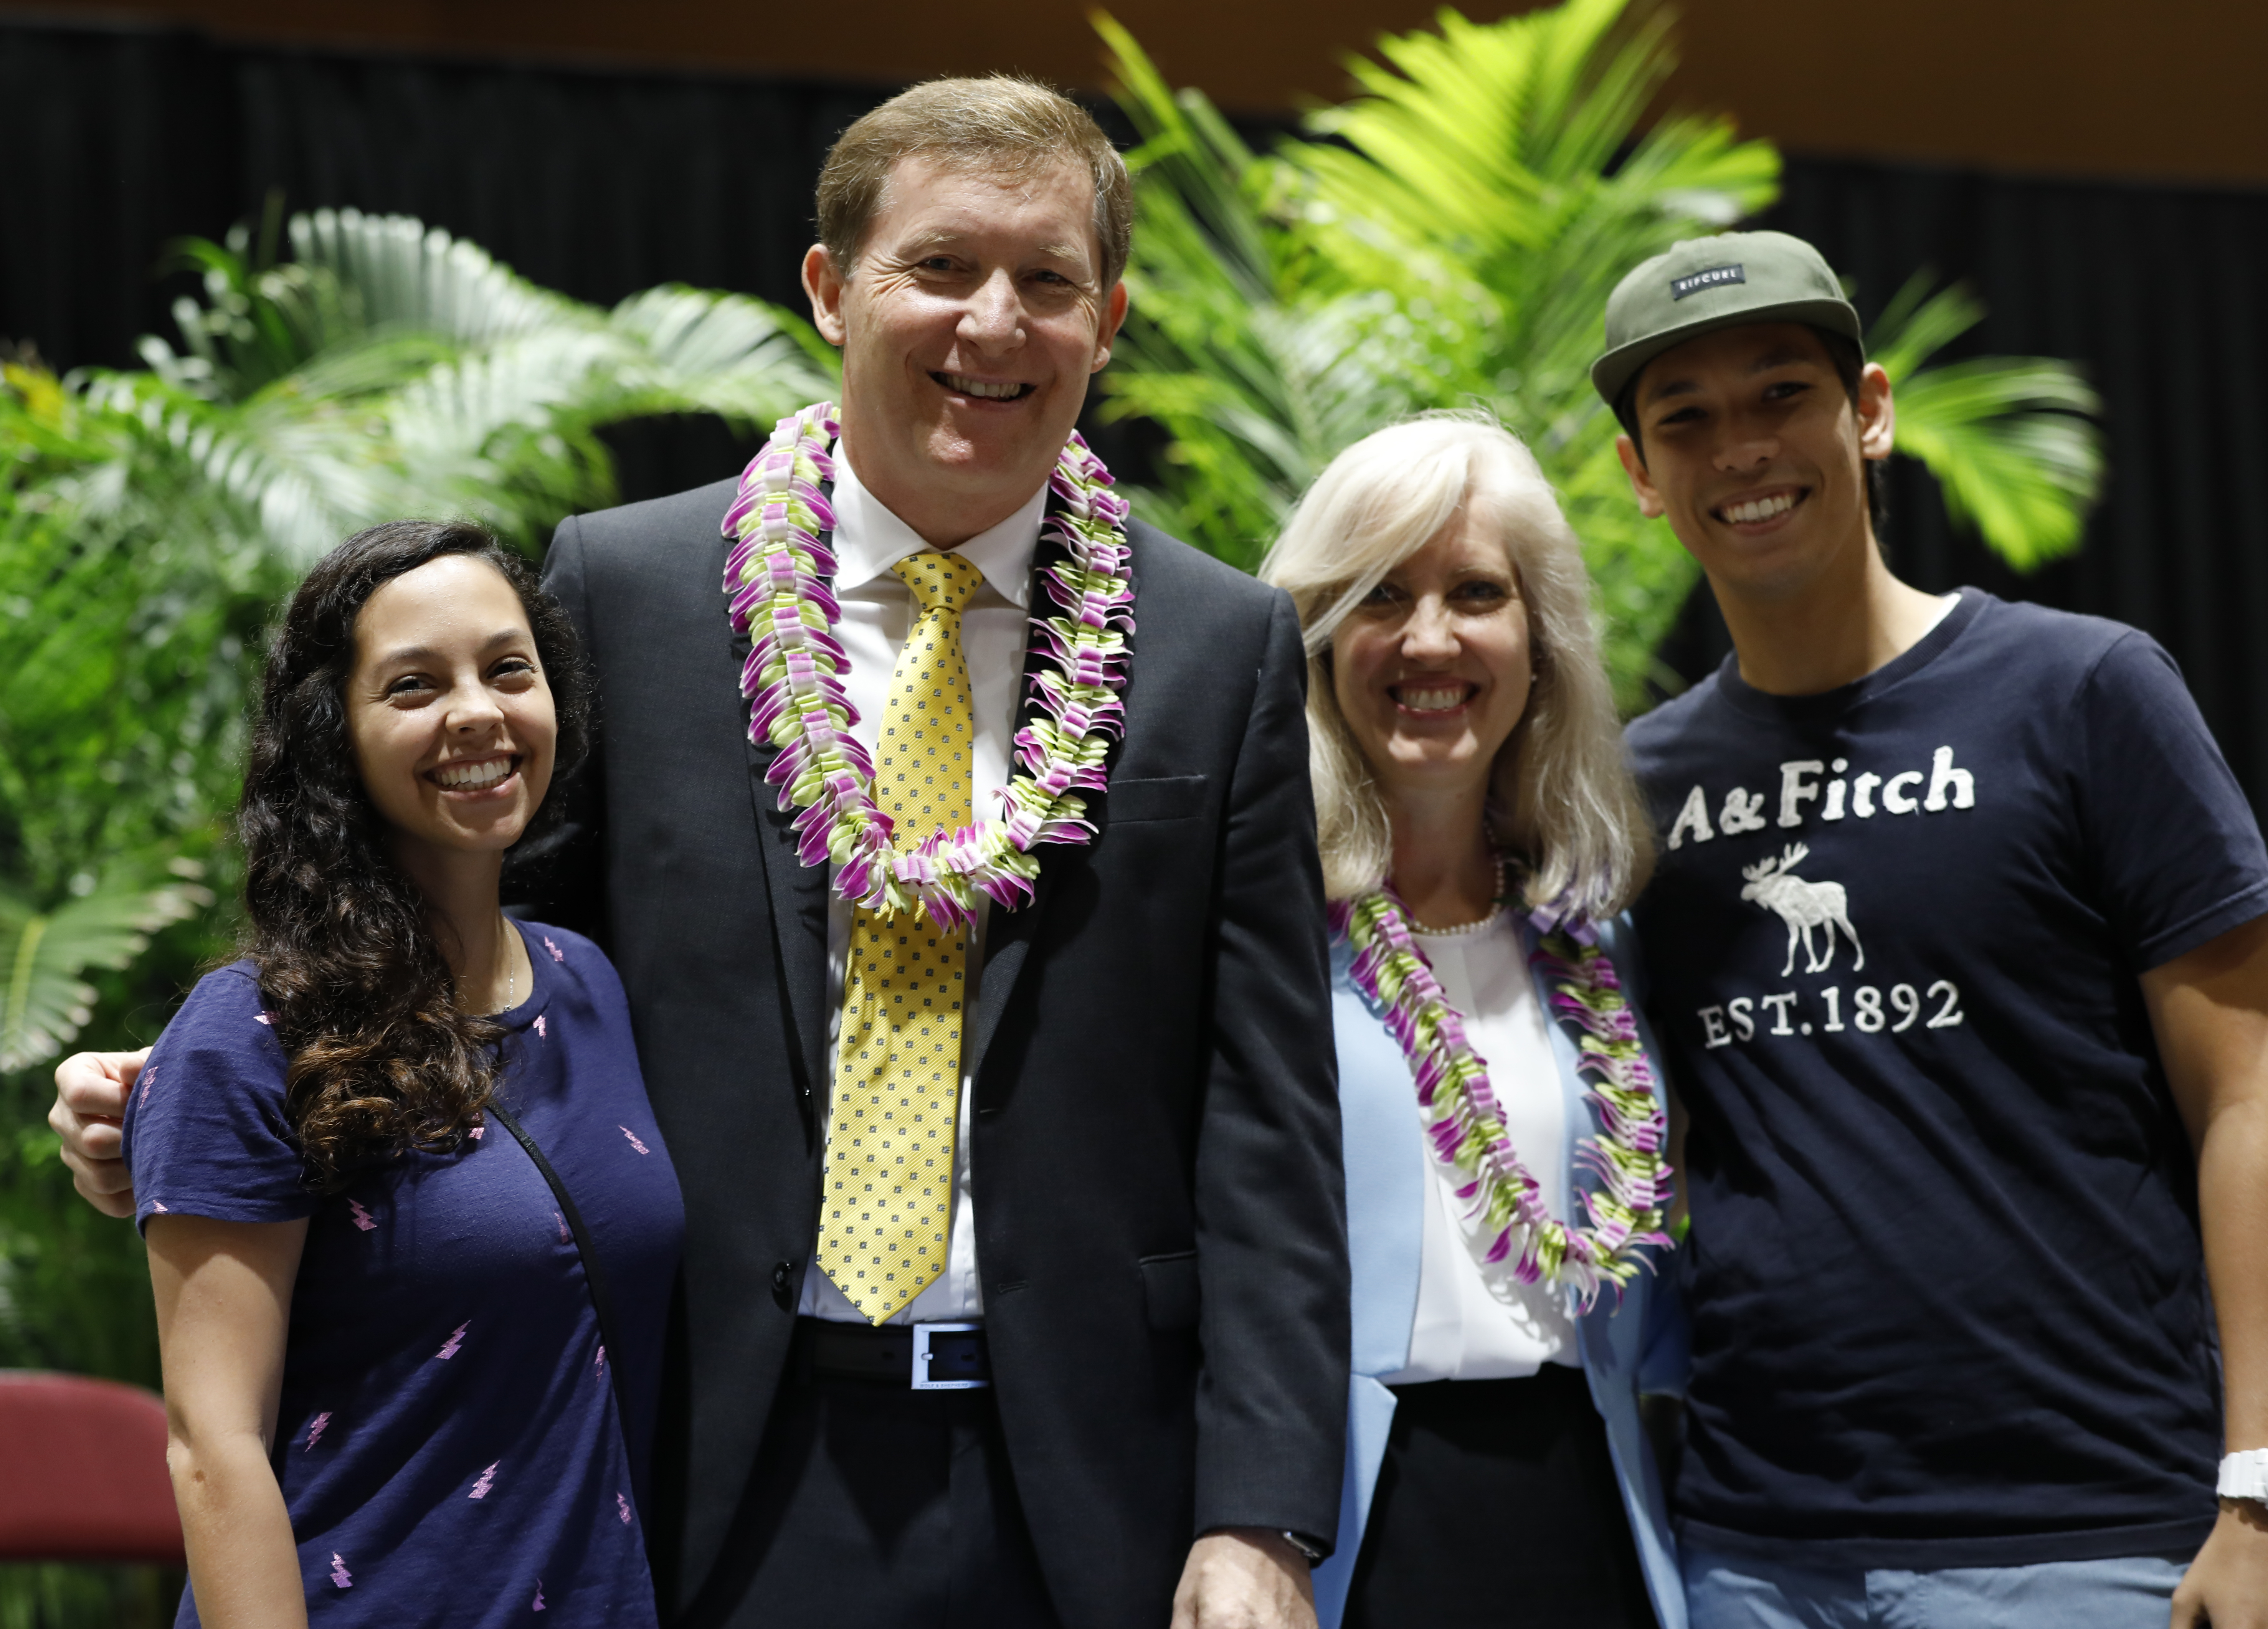 Elder L. Todd Budge and his wife, Lori, stand with Melissa Tobon Dorff, from Columbia, and her husband, John Dorff Jr., at BYU-Hawaii on Tuesday, Sept. 24, 2019. Elder Budge was John Dorff's mission president in Japan.